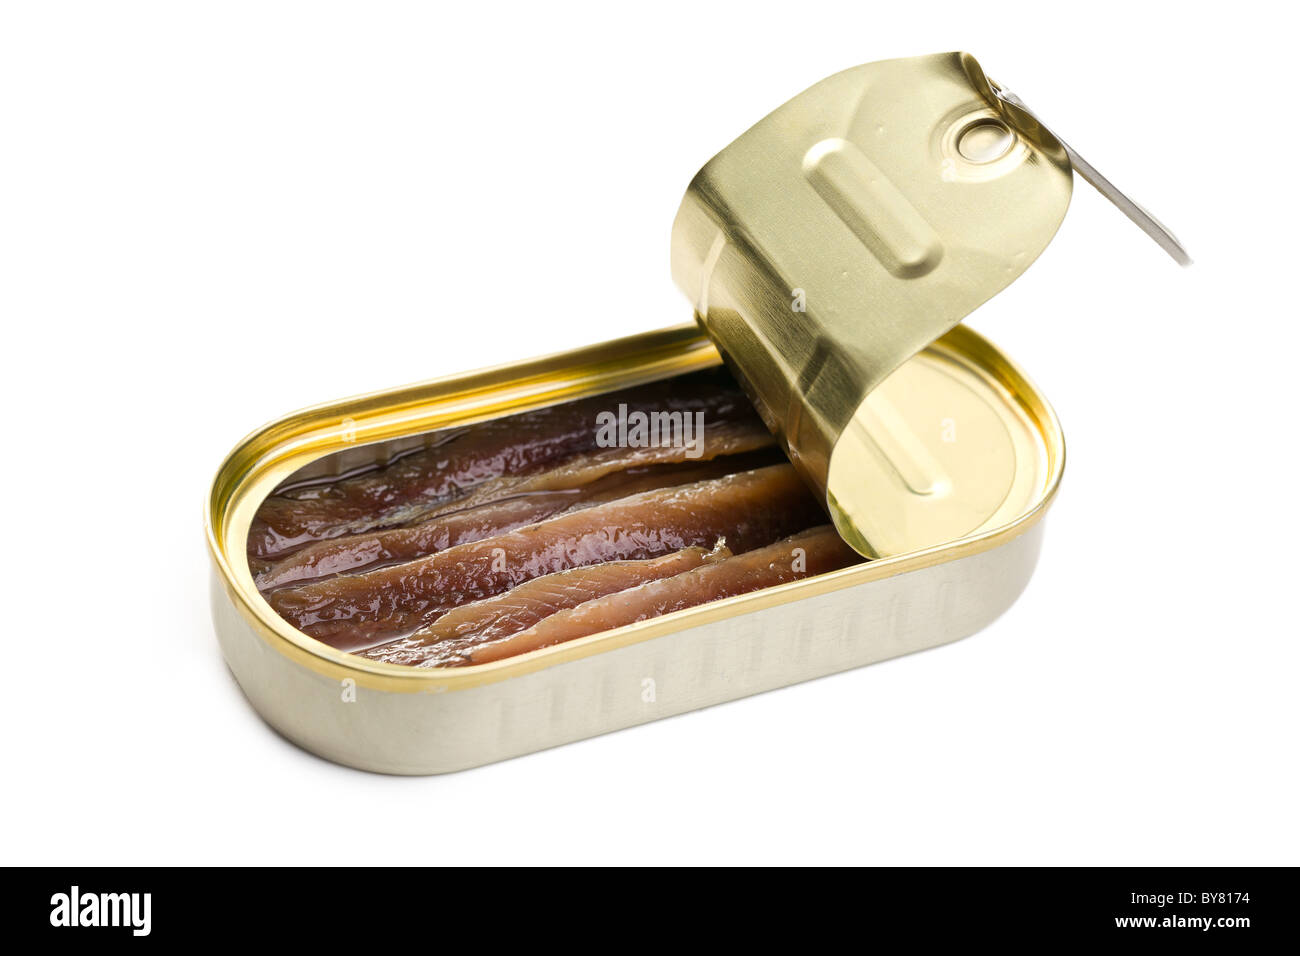 the anchovies fillets in tin can - Stock Image